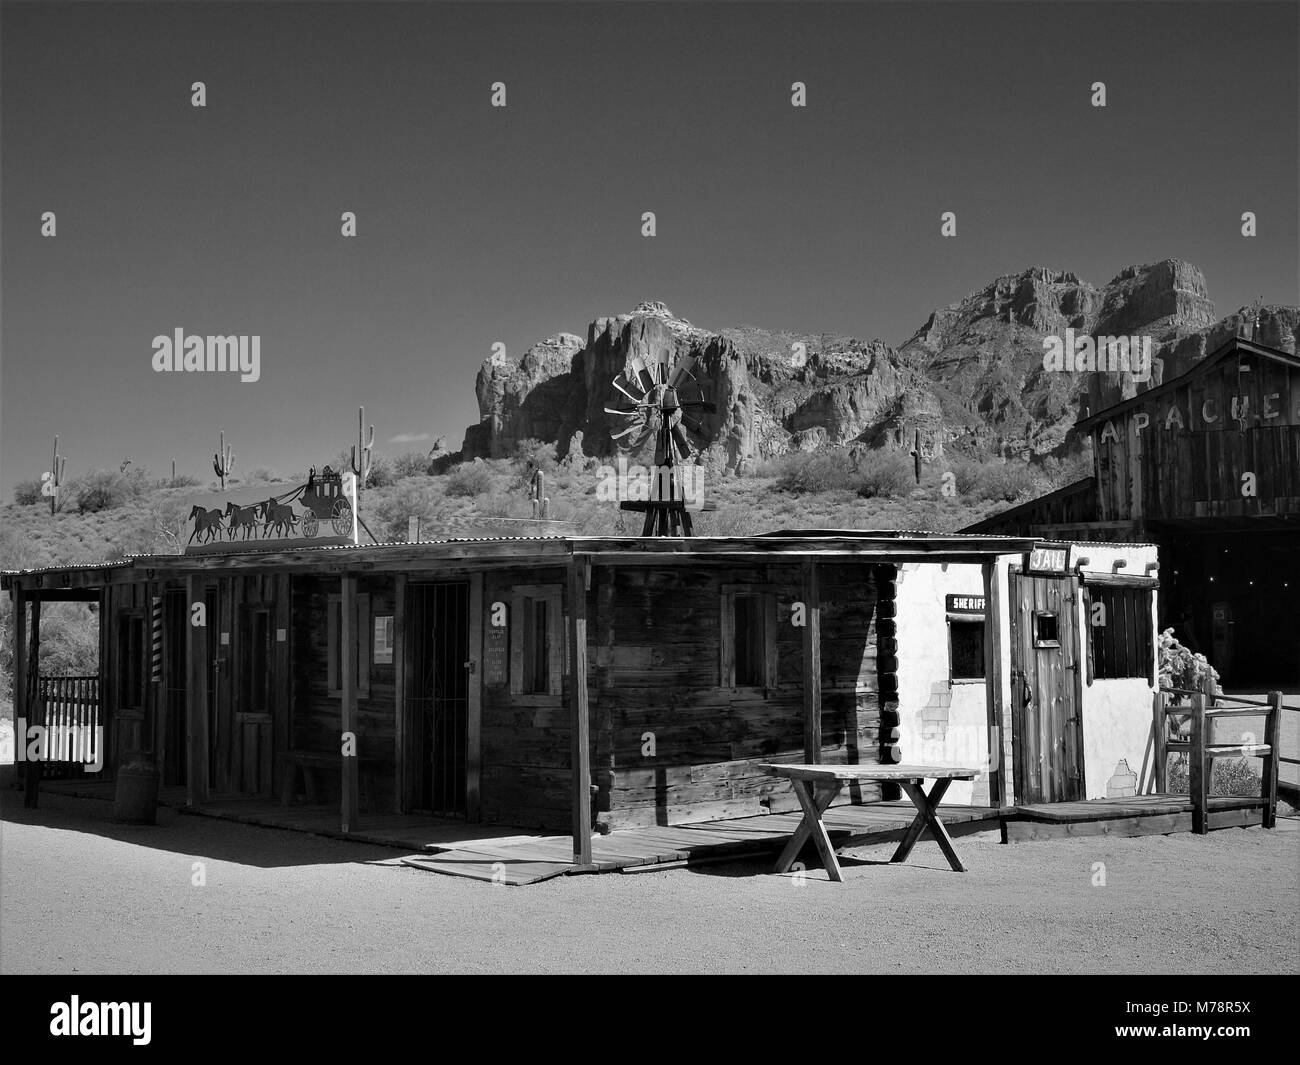 Old Apacheland movie set from the 1940's with Superstition mountain in the background. This was the setting - Stock Image